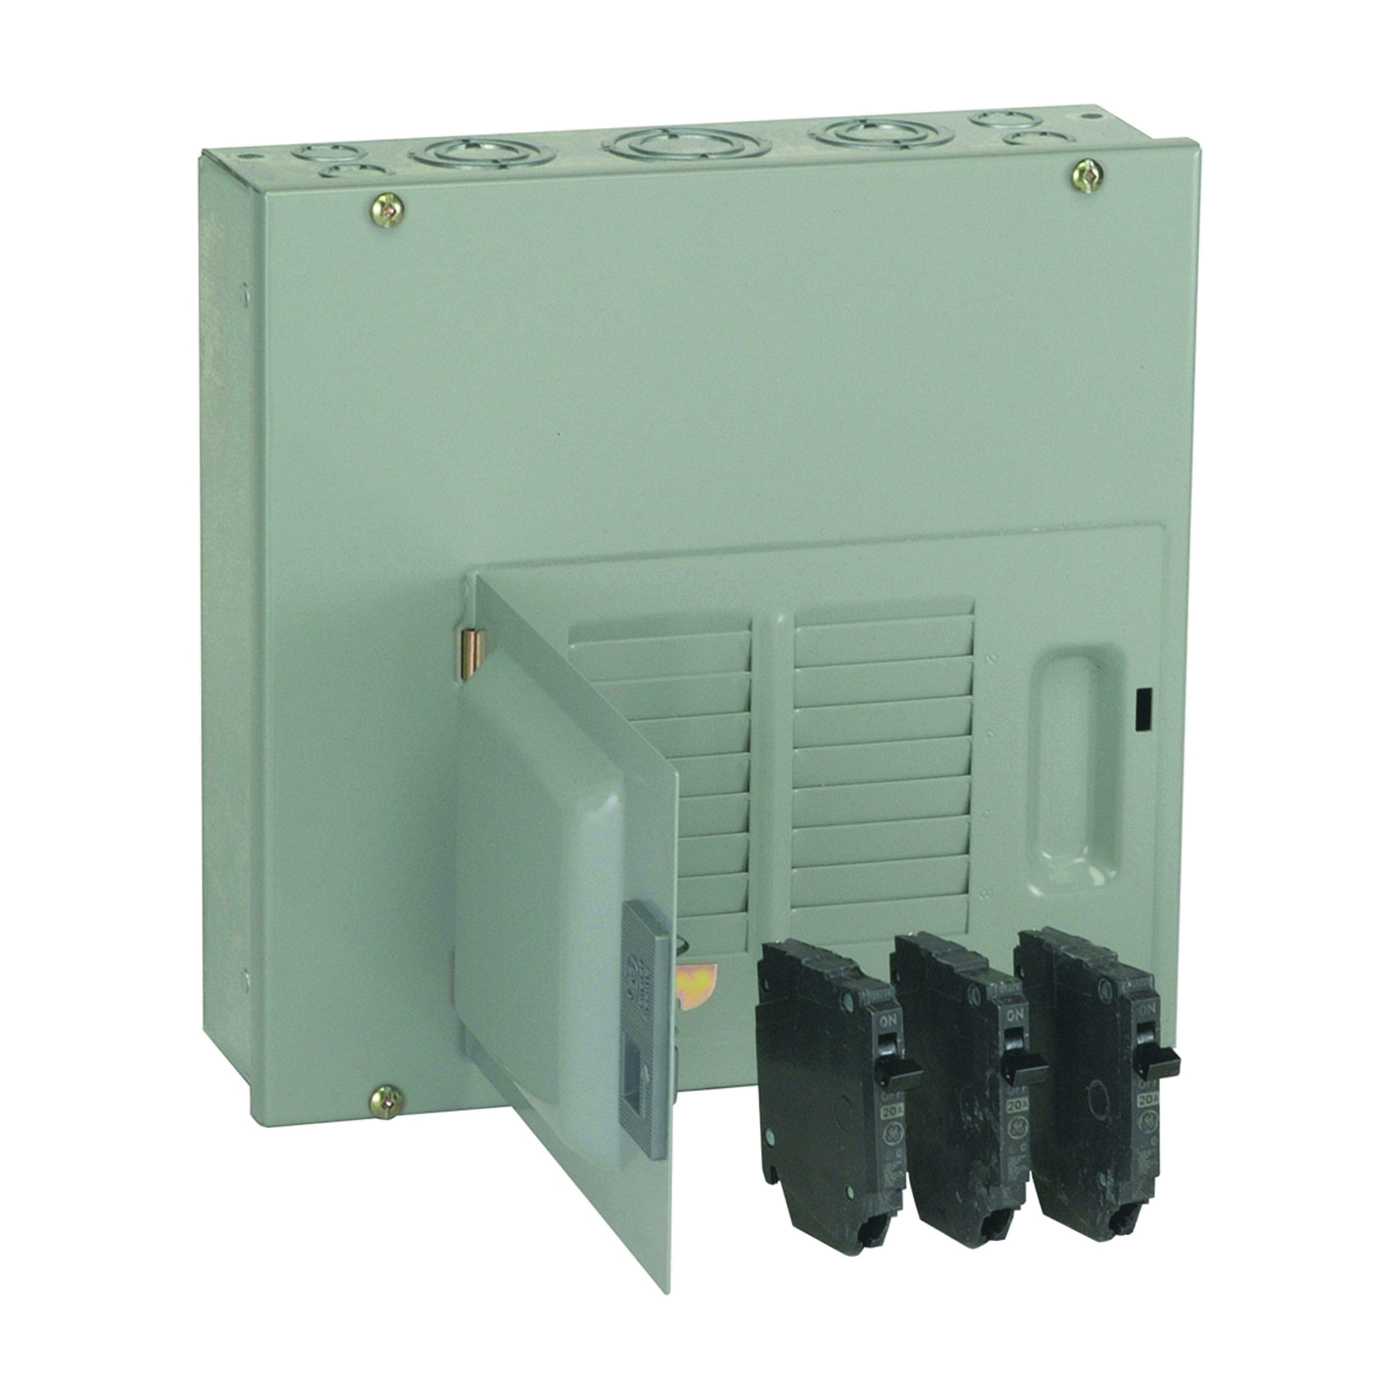 Picture of GE Industrial Solutions PowerMark Gold TLM Series TLM812SCUD1K Load Center, 125 A, 8-Space, 16-Circuit